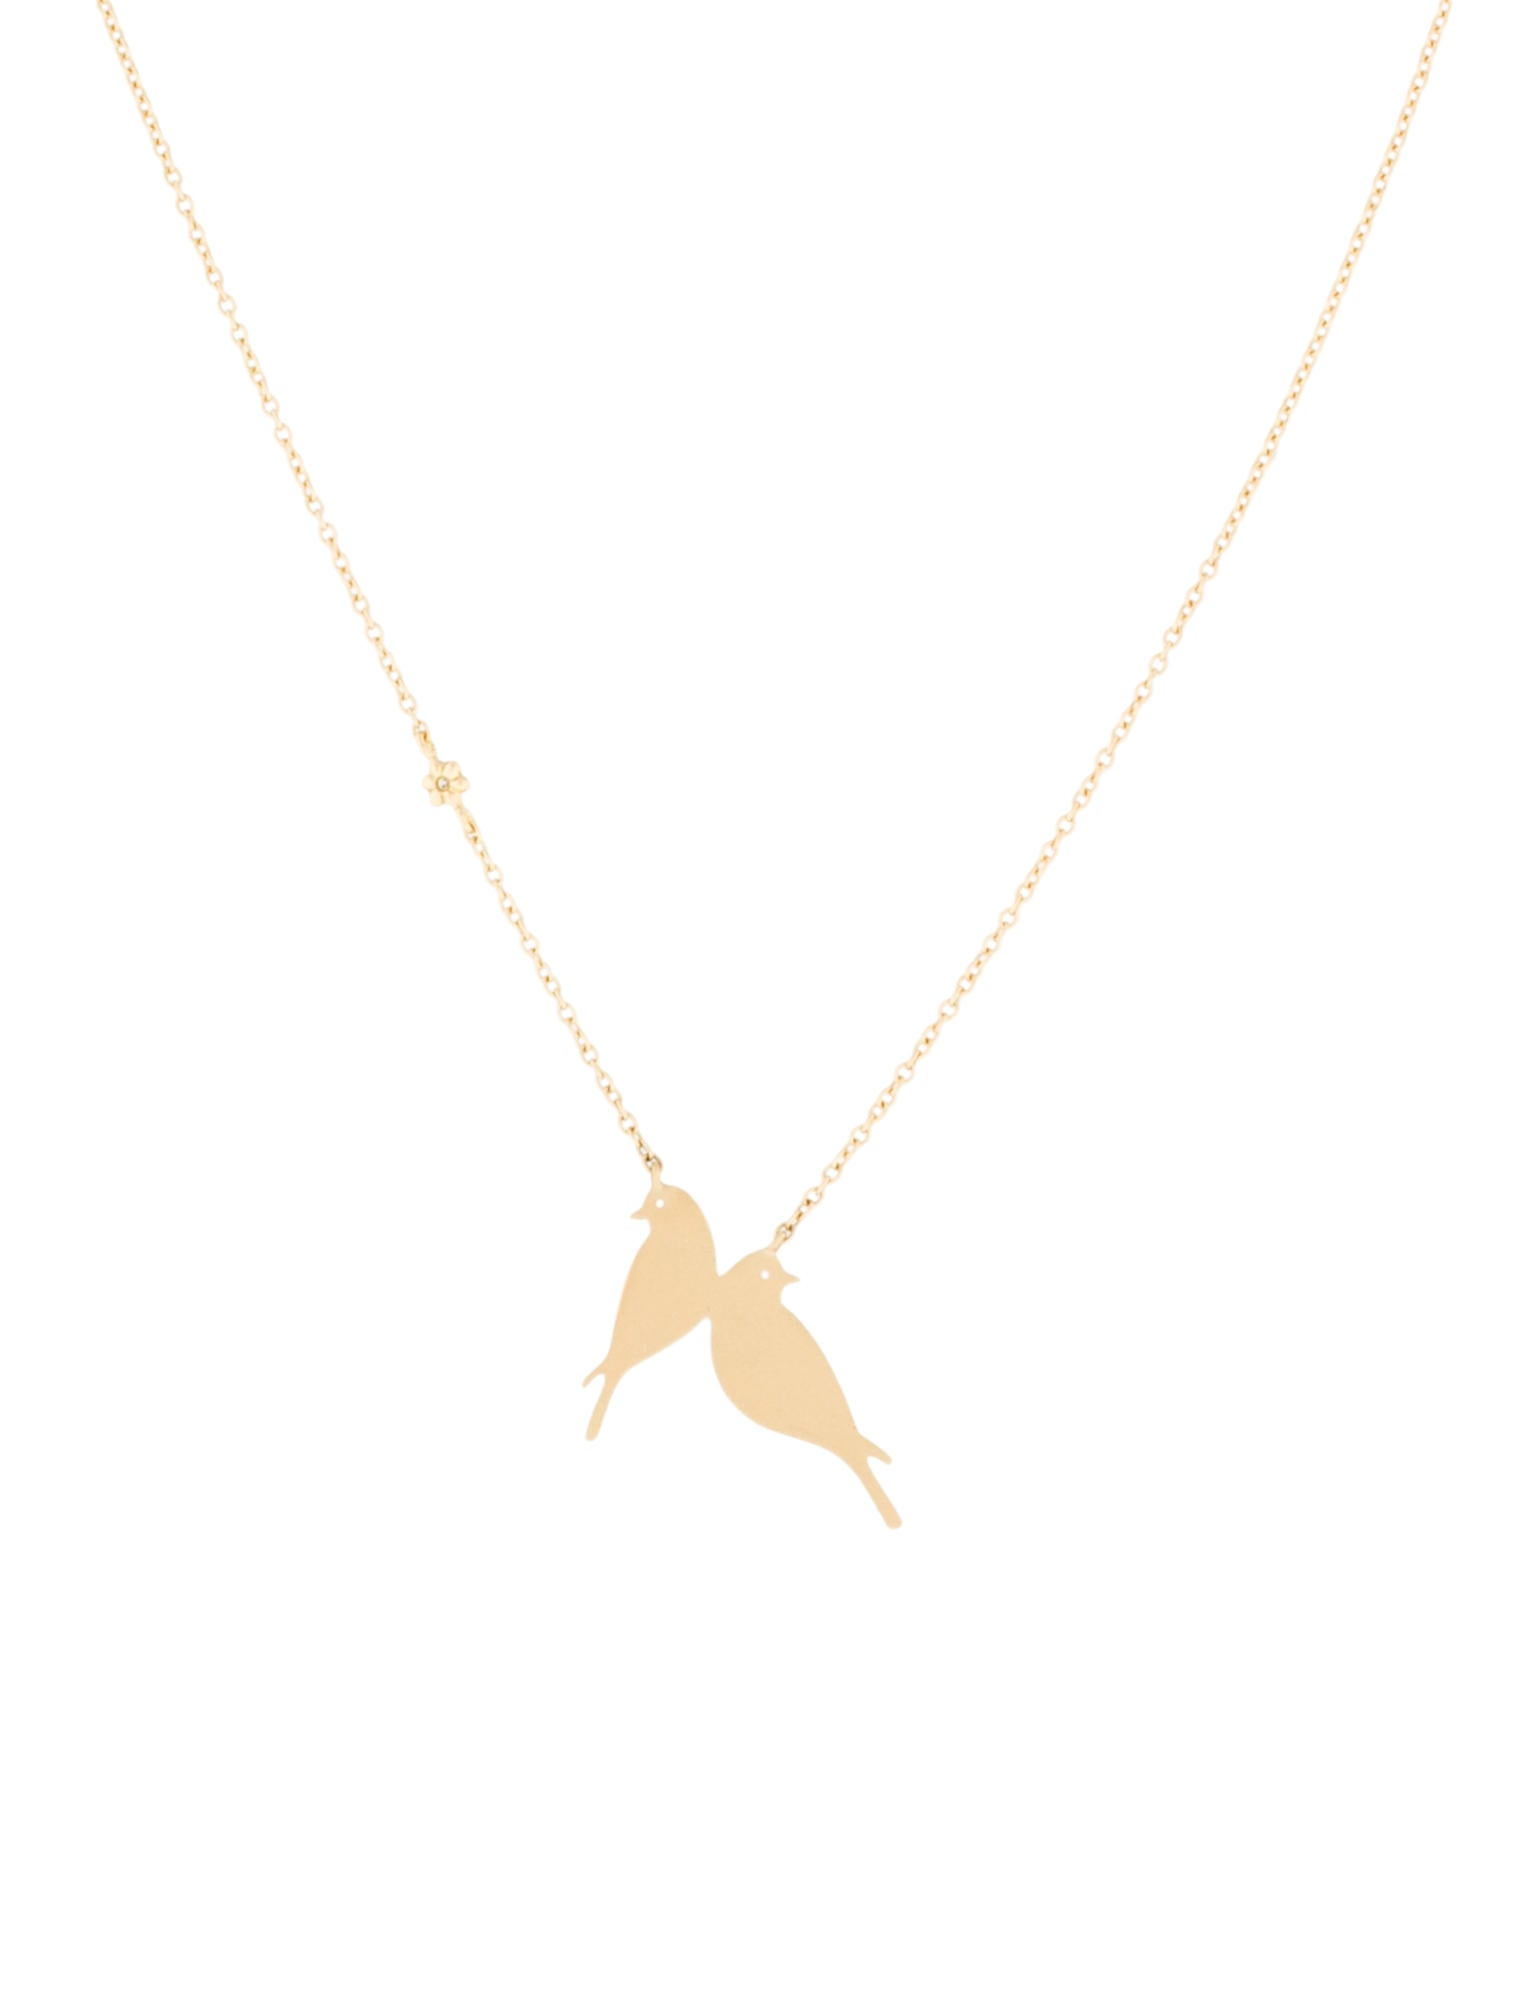 gallery bird birds necklace choker listing photo fullxfull dainty silver ddeg love sterling il